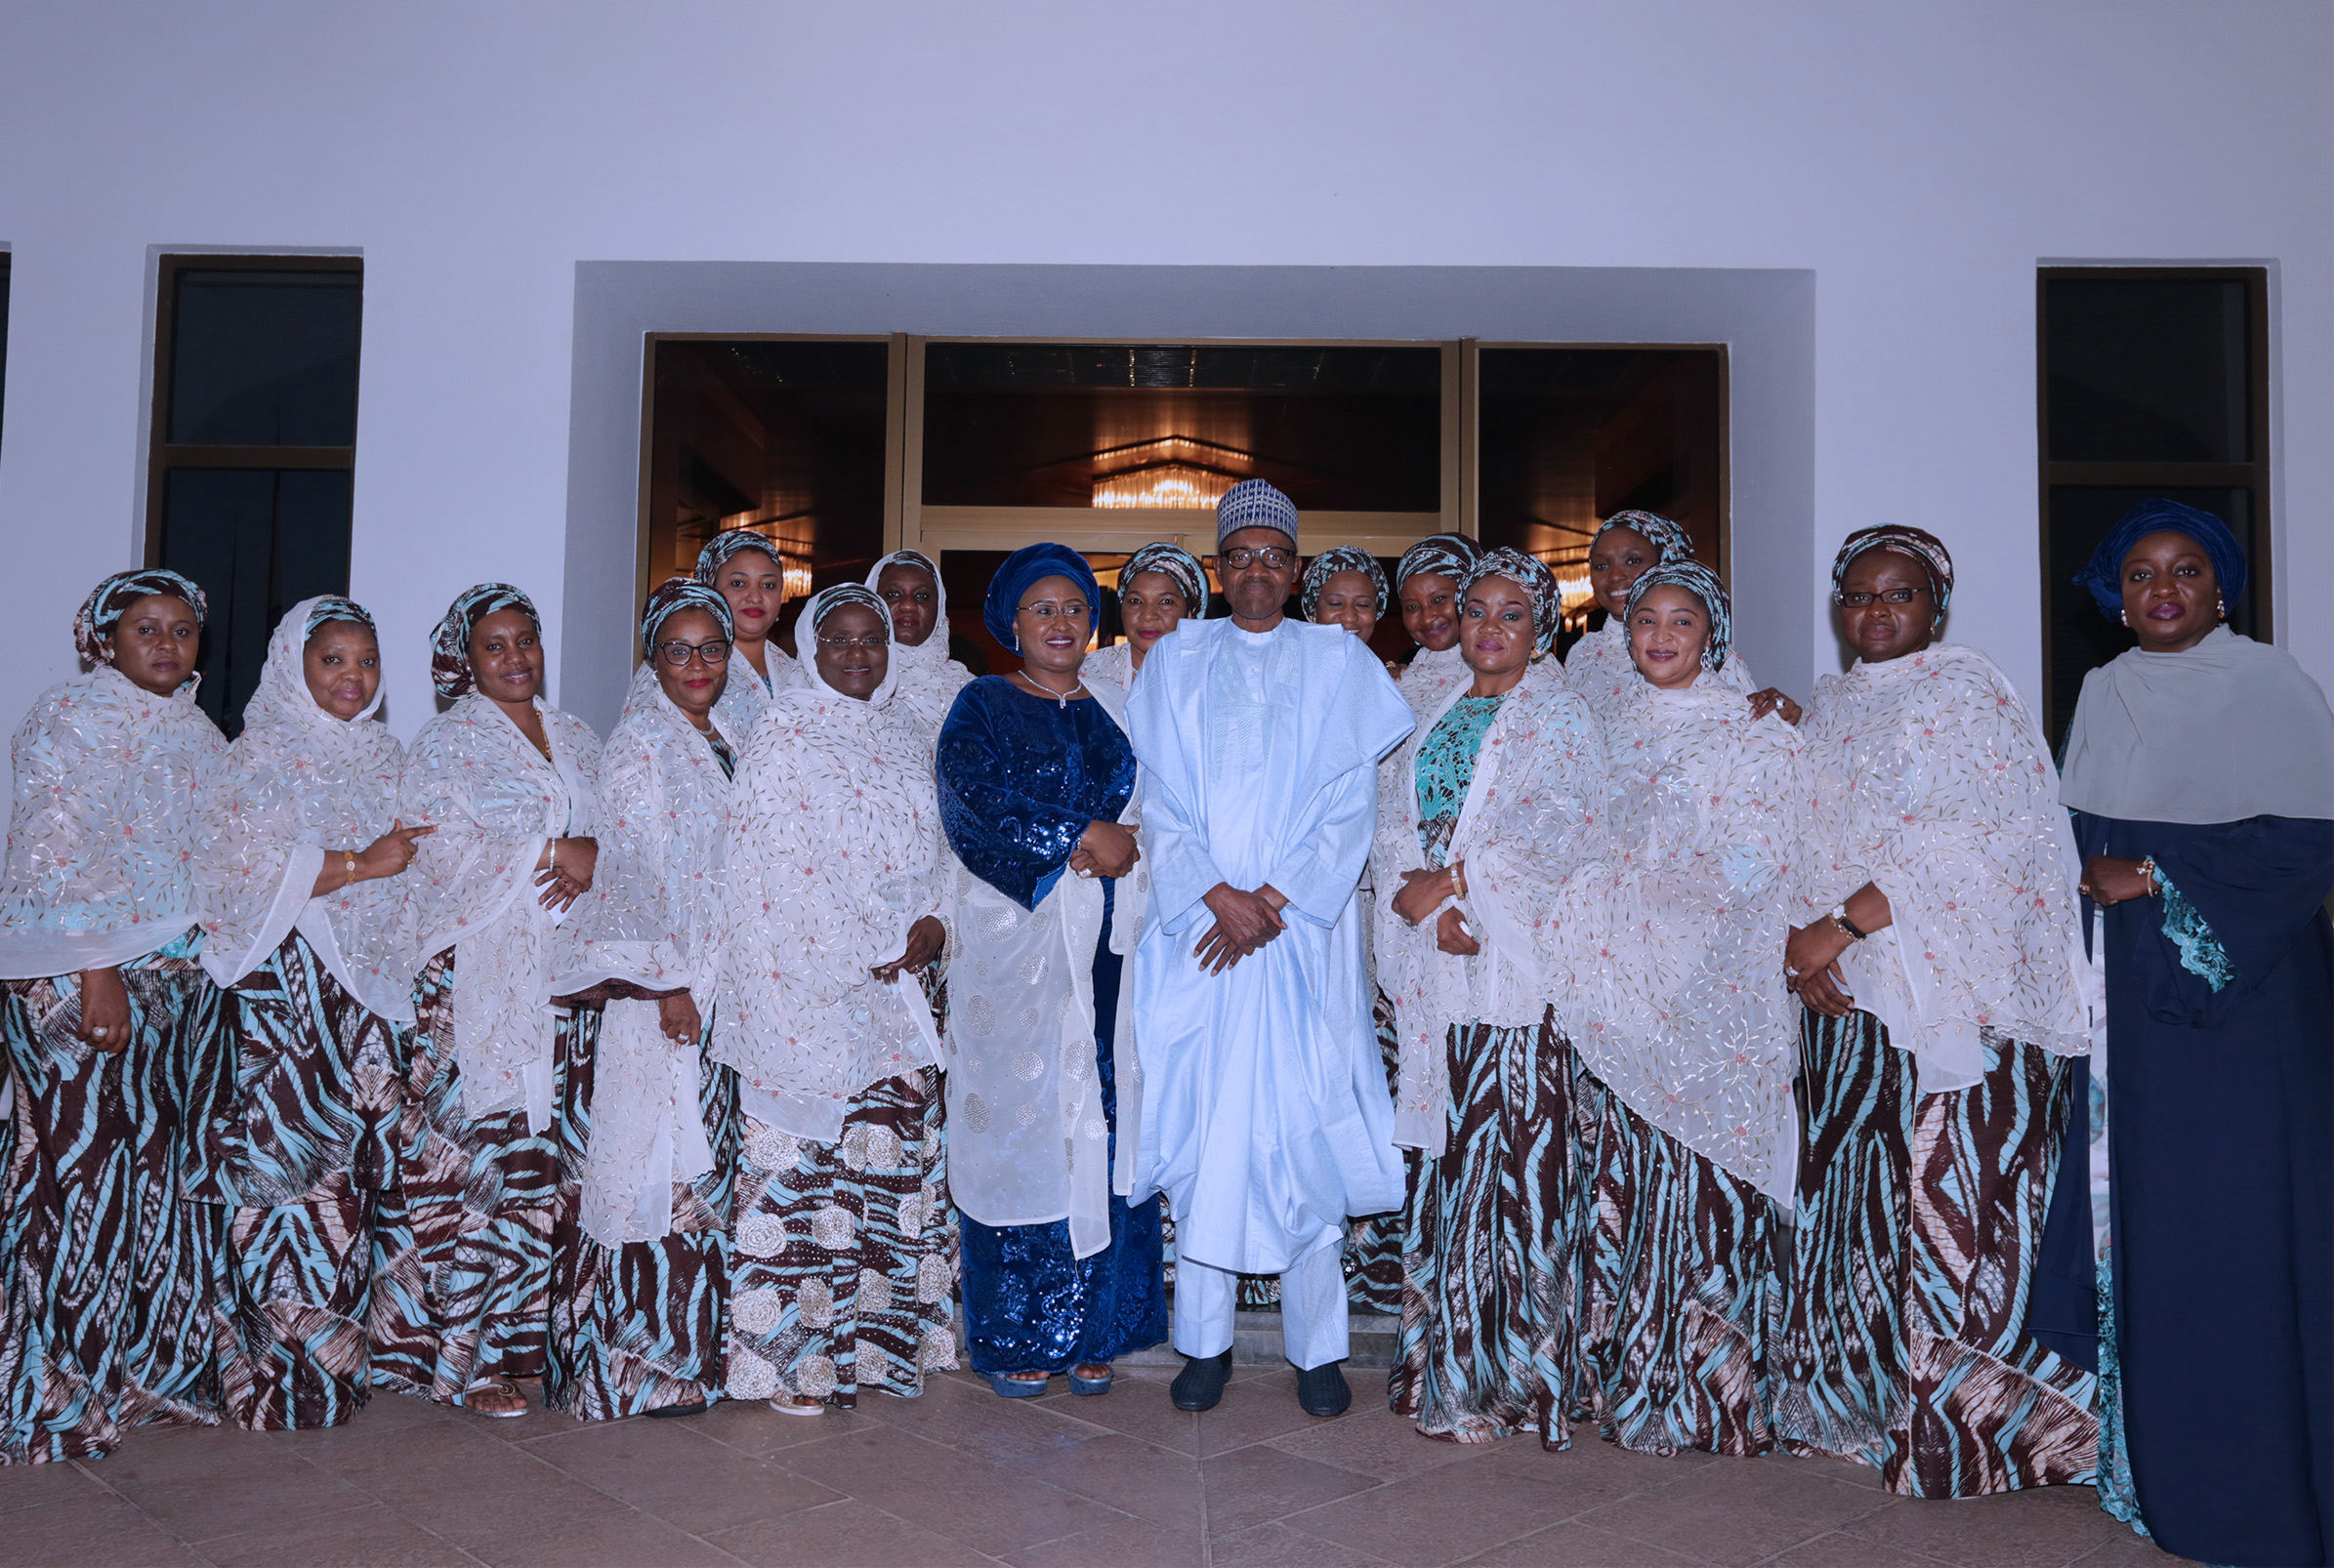 PRESIDENT BUHARI RECEIVES 36 STATES GOV'S WIVES 8B. President Muhammadu Buhari, his wife Hajiya Aisha Muhammadu Buhari and Wives of Northern State Governors during an audience at the State house Saturday night in Abuja. PHOTO; SUNDAY AGHAEZE. MAY 26TH MAY 2018.